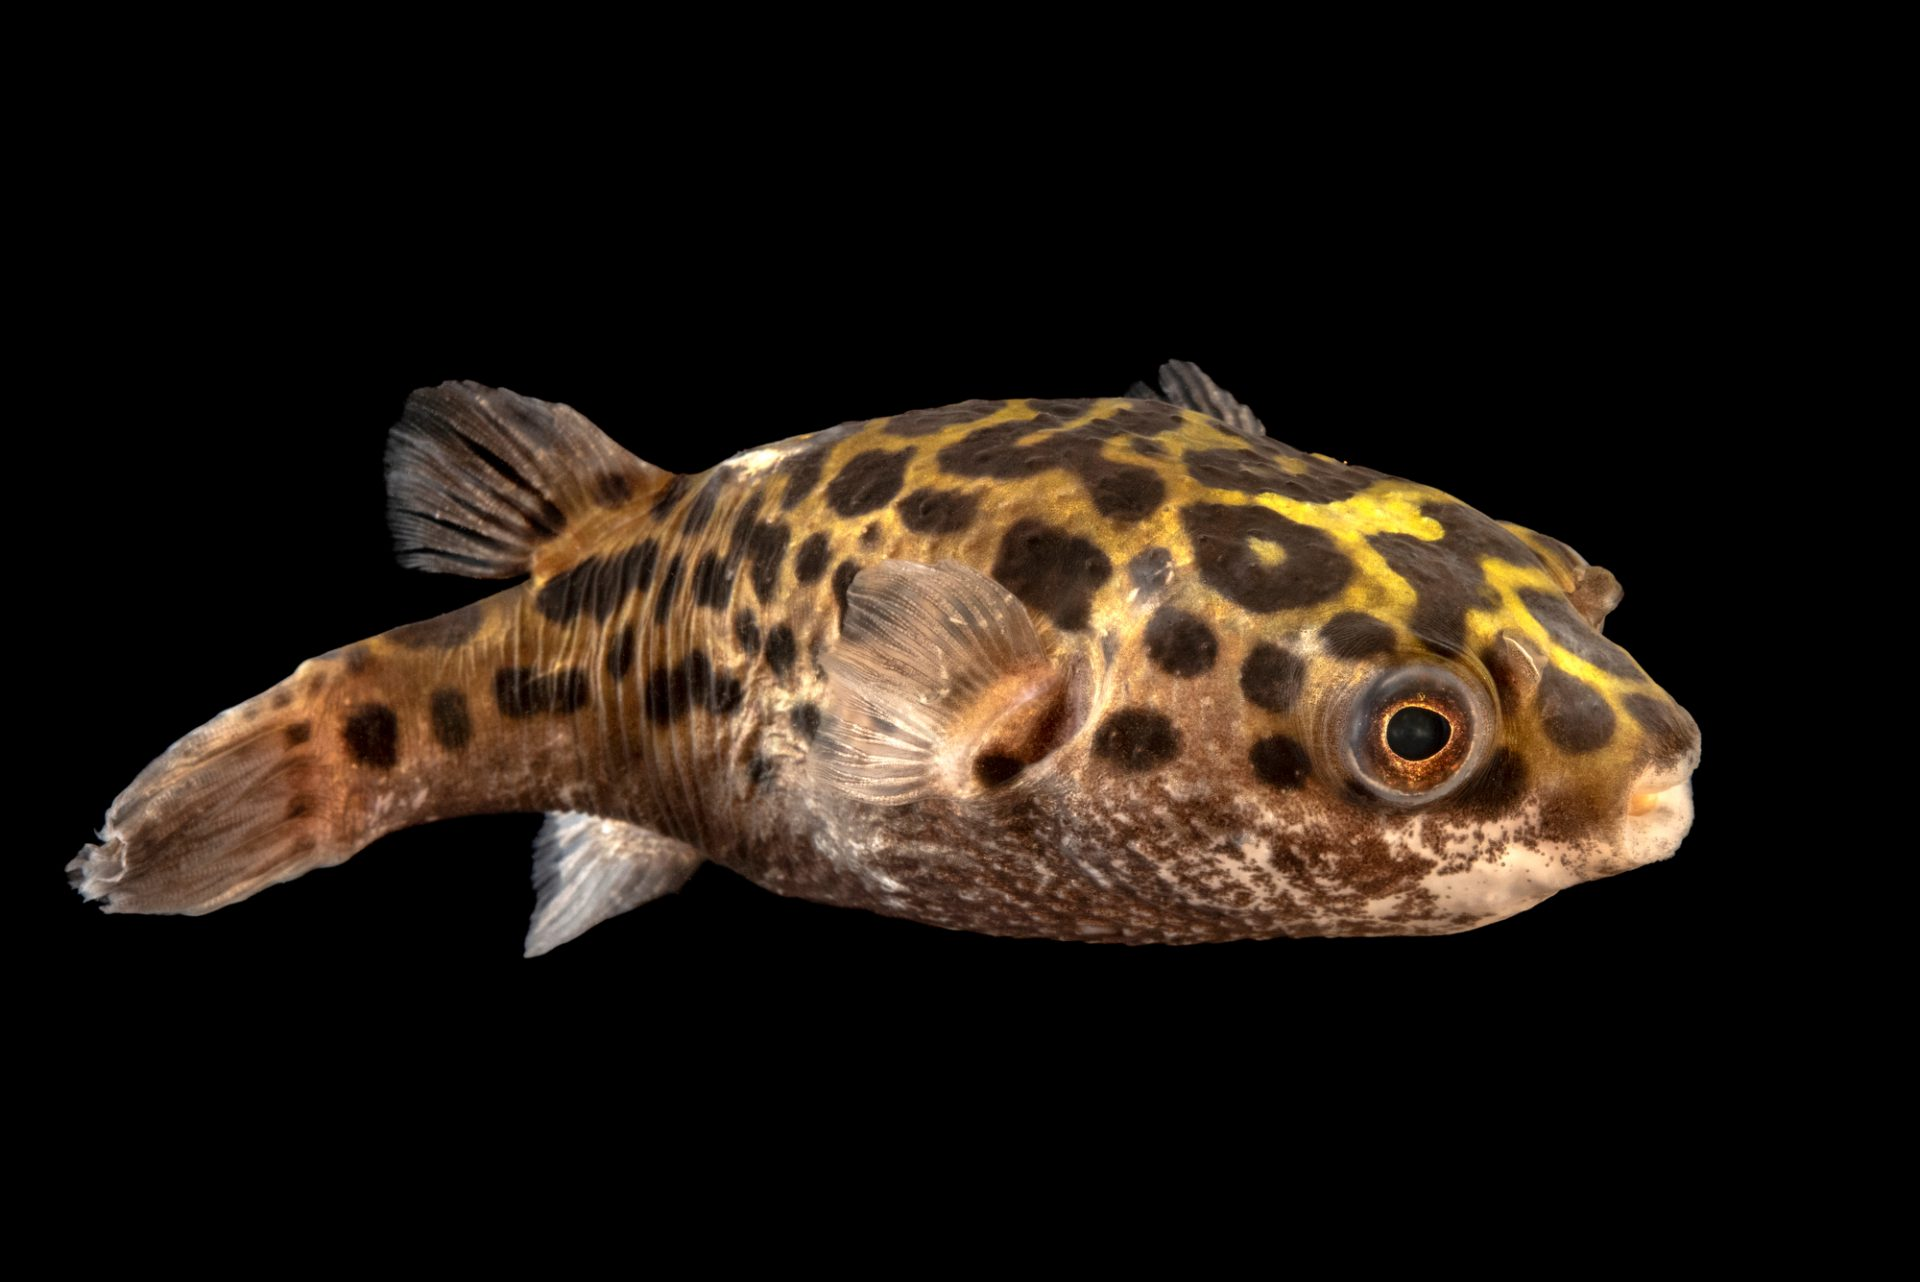 Photo: Spotted puffer (Tetraodon fluviatilis) at the Oklahoma City Zoo.